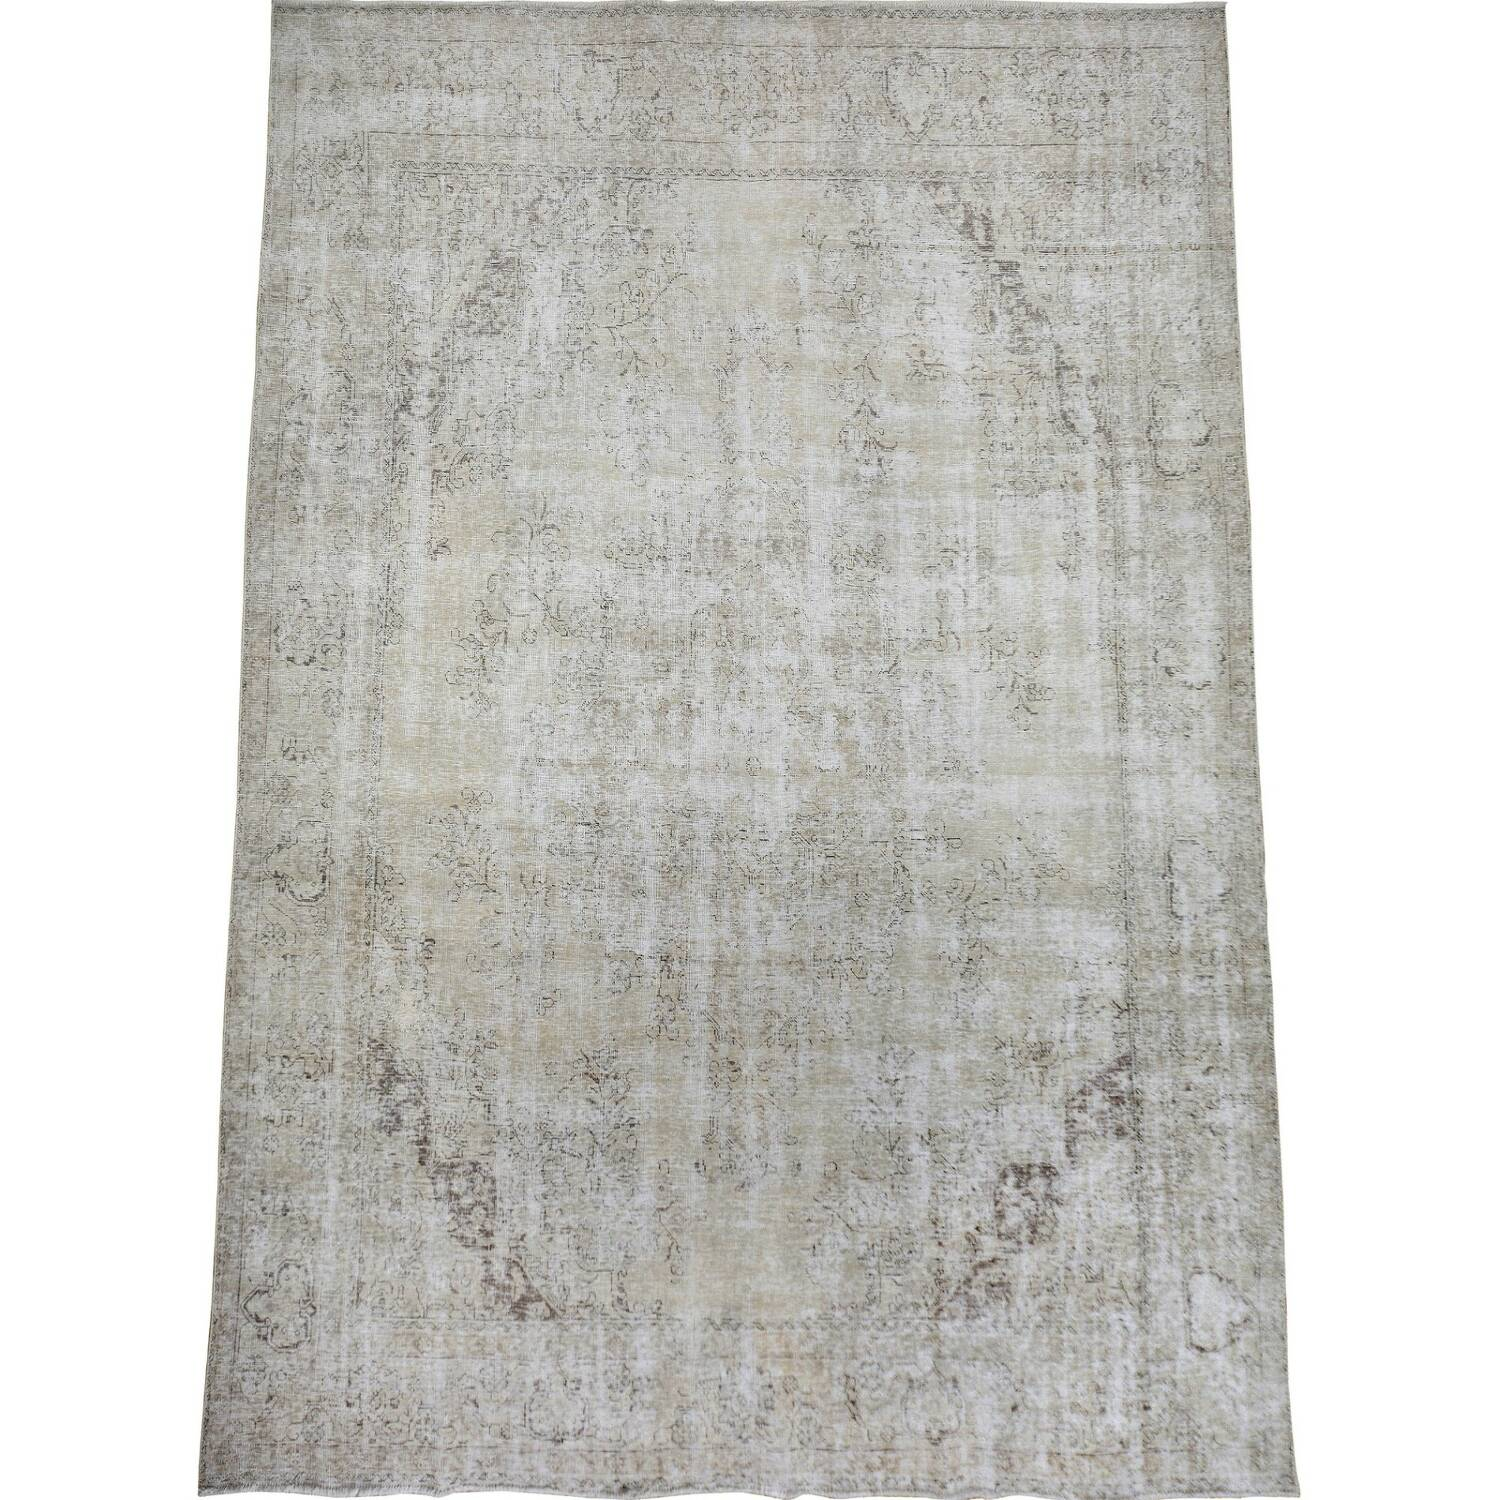 Antique Tabriz Persian Distressed Area Rug 9x12 image 2